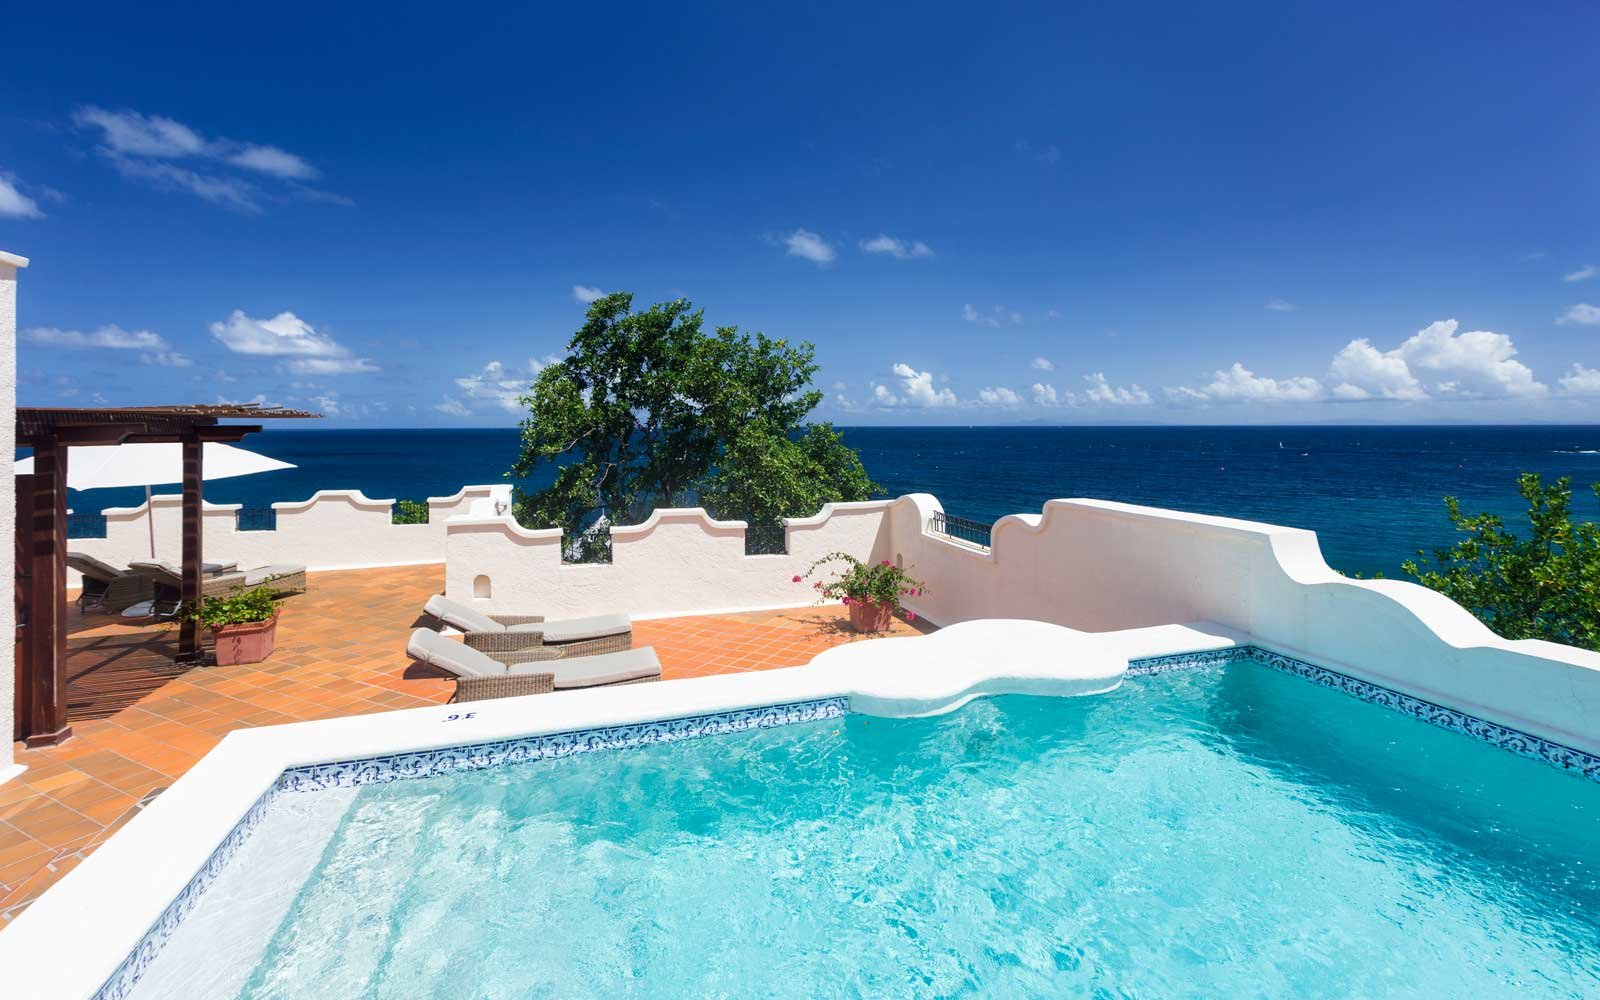 Pool of the Cap Maison resort in St Lucia